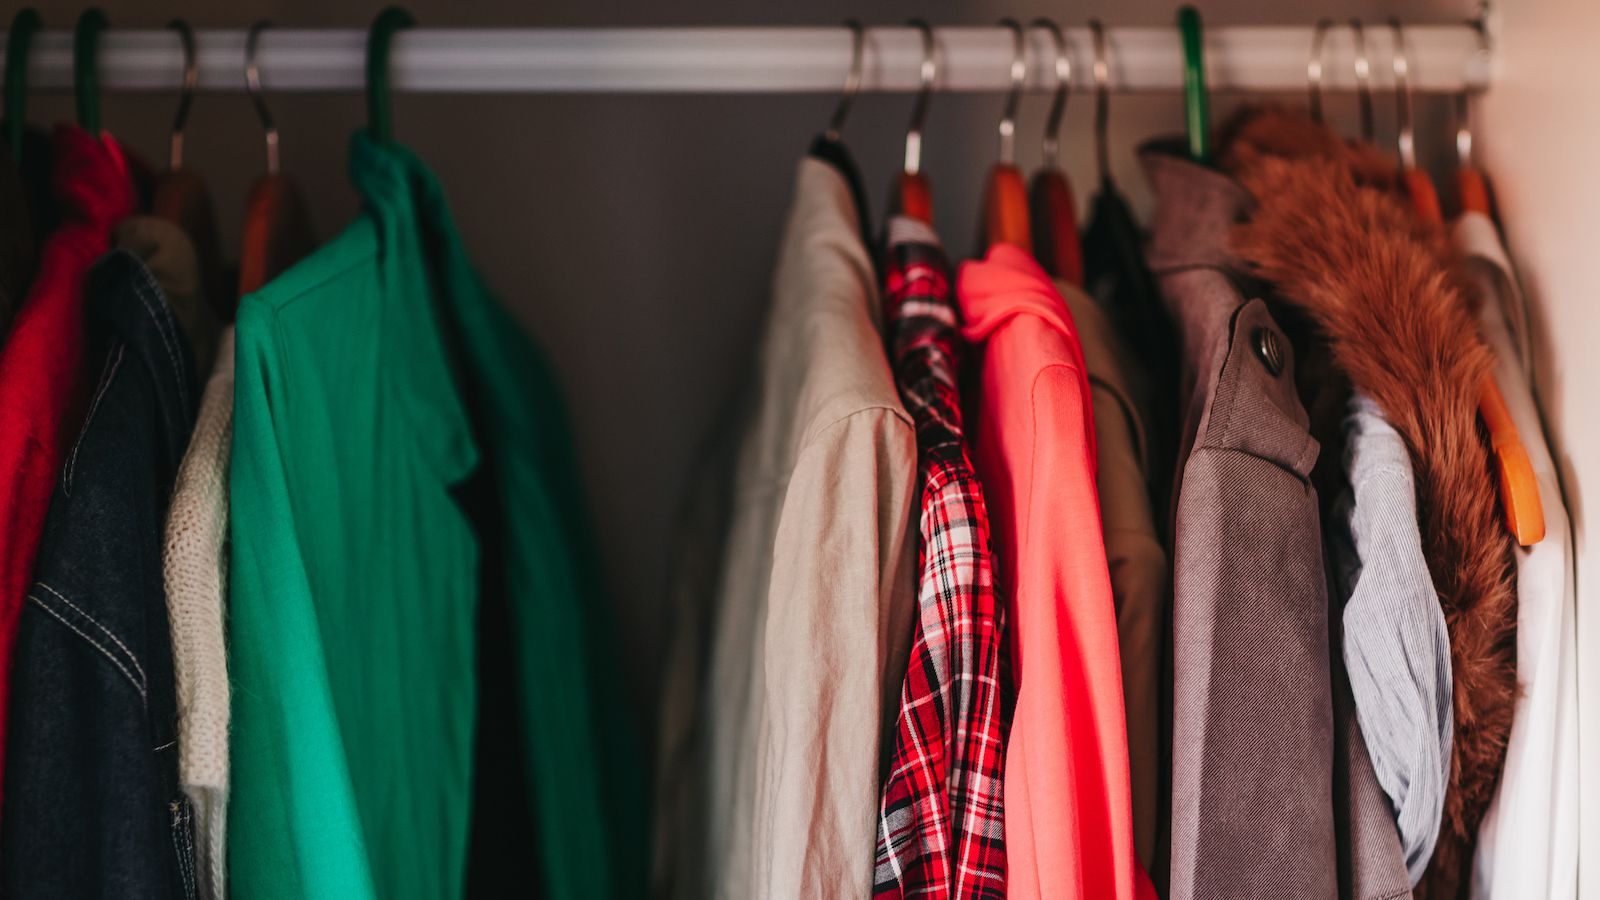 There's a good chance you have a few gently worn coats you could donate this season.